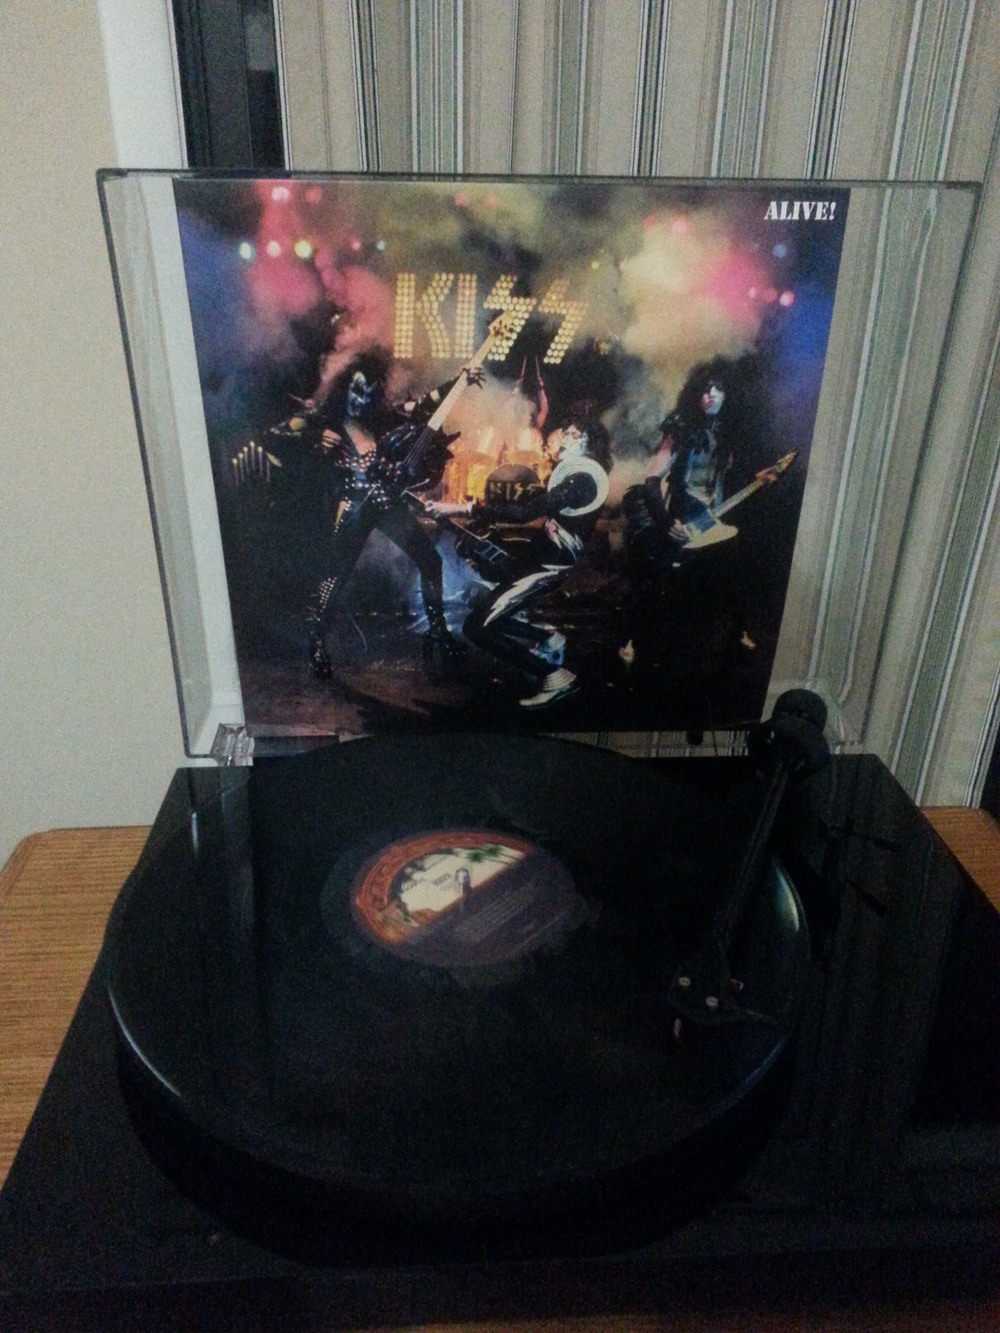 KISS Alive On The Turntable